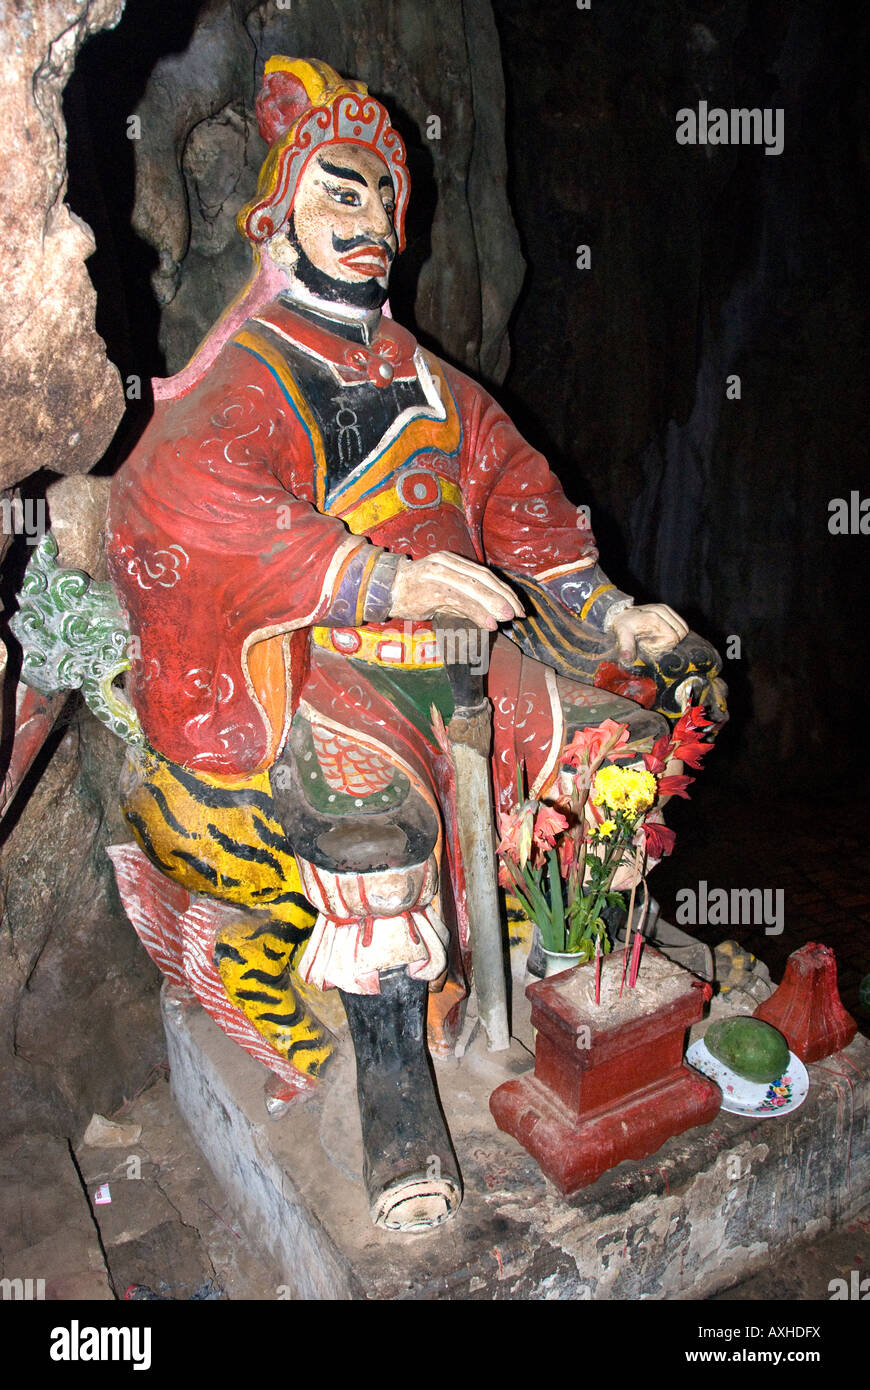 Hindu god guarding the entrance to a cave in Thuy Son Mountain, Marble Mountains, Danang, Vietnam - Stock Image